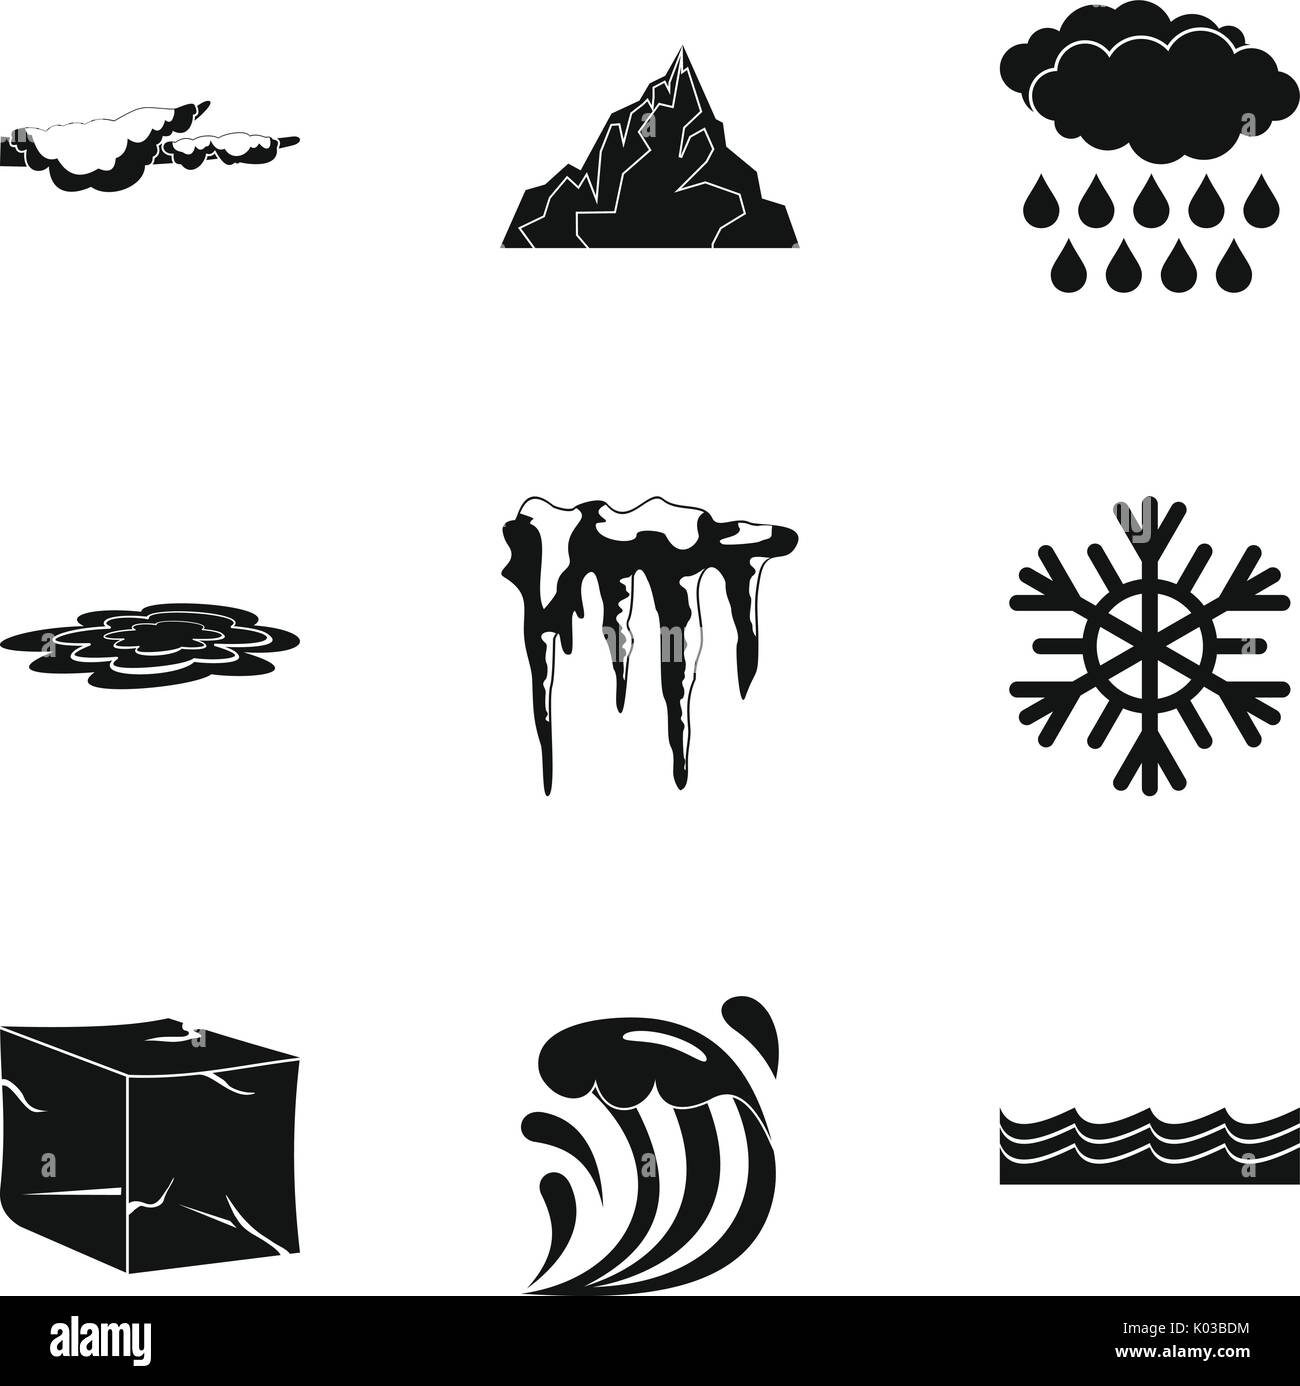 Water form icon set, simple style Stock Vector Art & Illustration